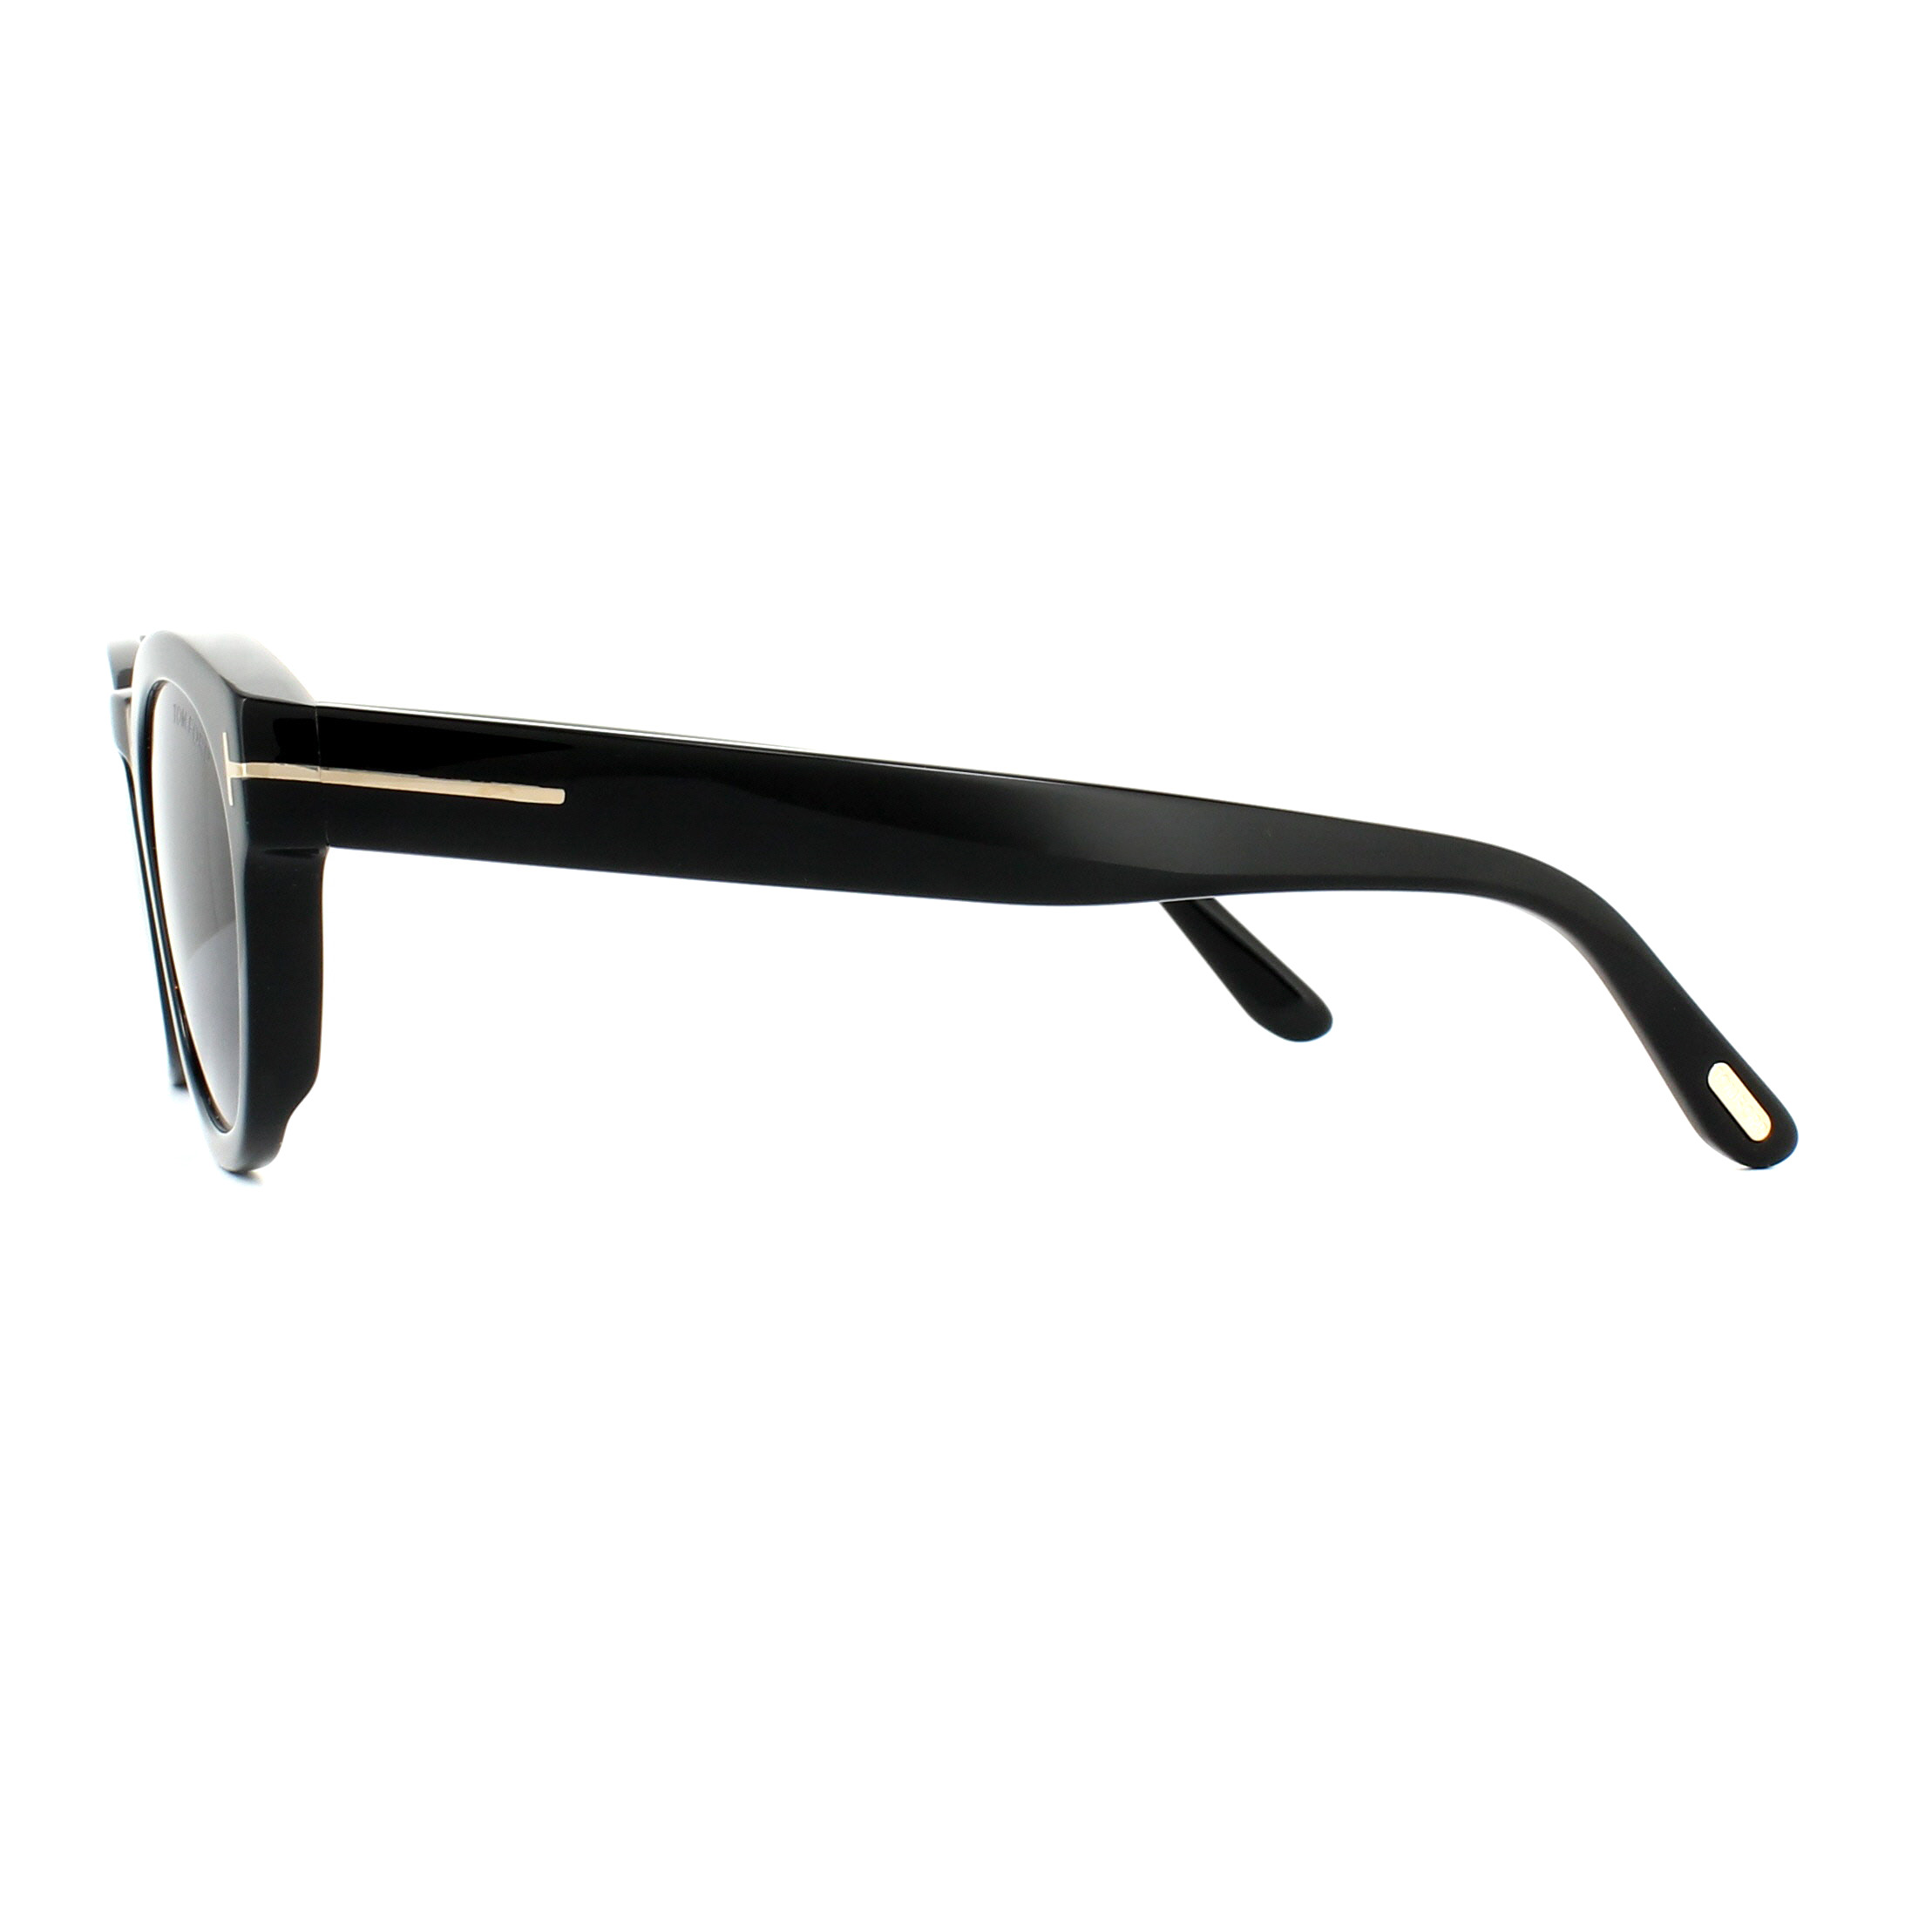 2a6c04bcf62c Sentinel Tom Ford Sunglasses 0590 Bryan 01V Shiny Black Grey Polarized